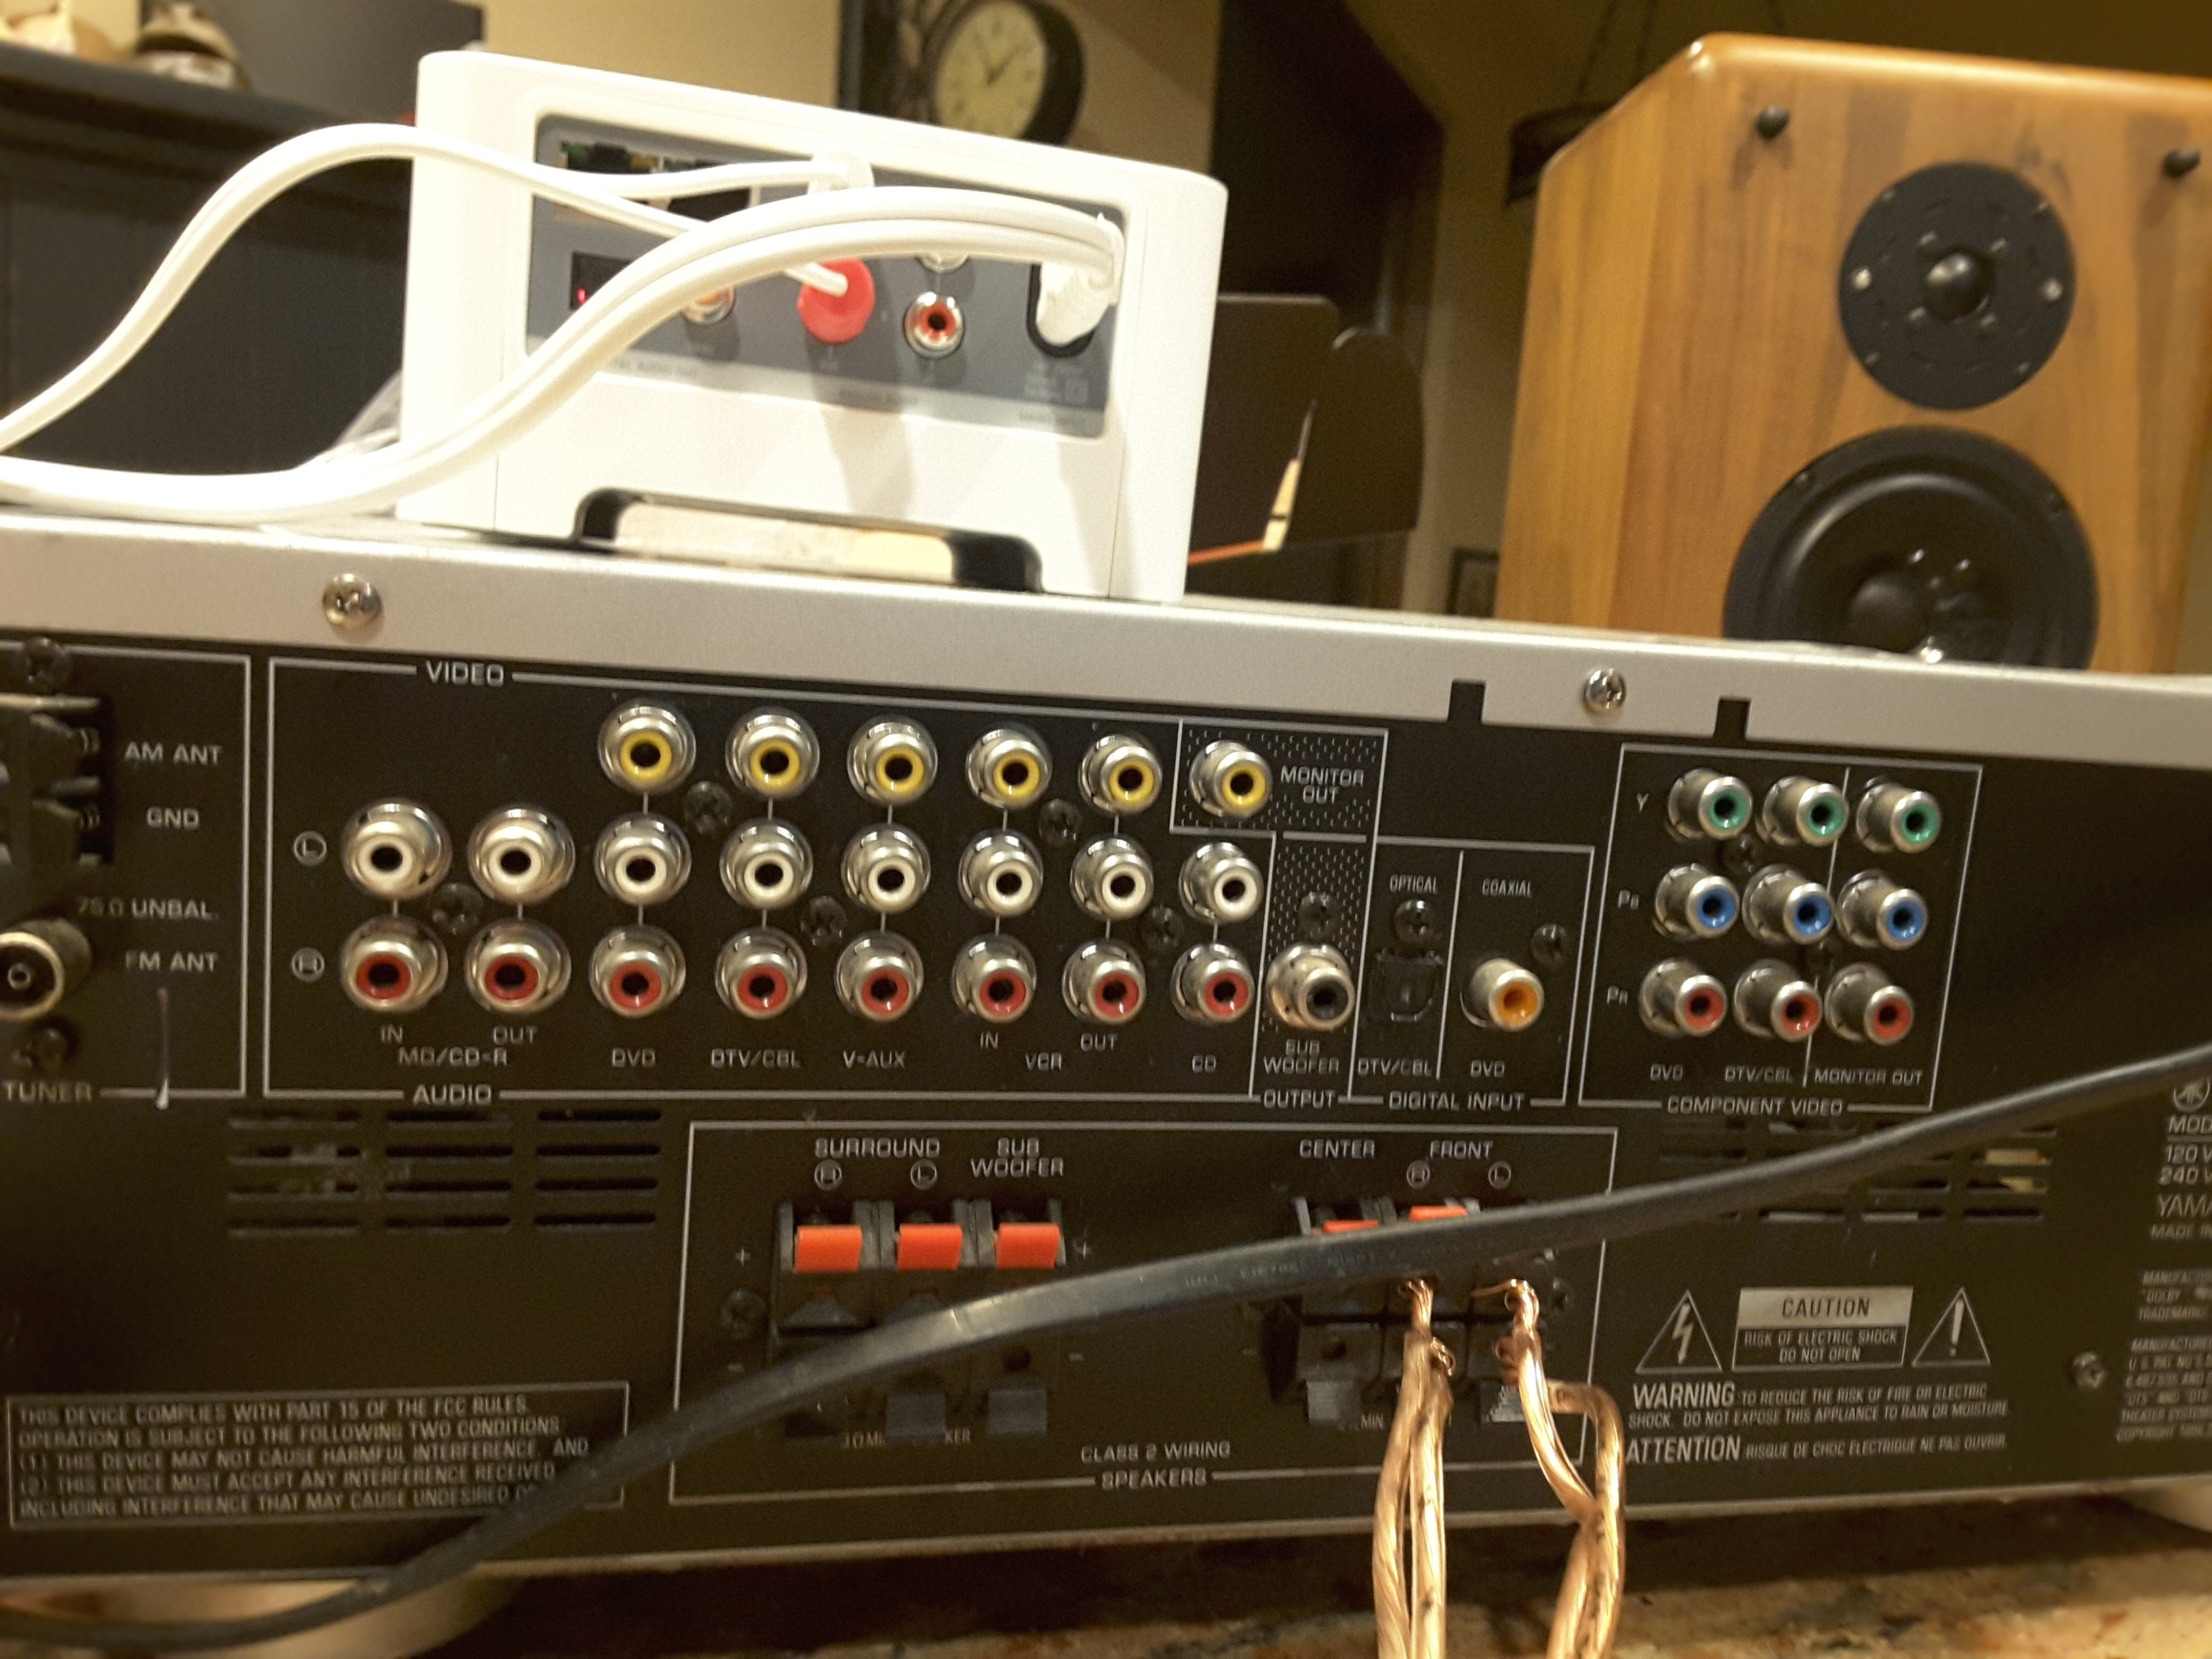 connect and a 15 year old Yamaha HTR 5920 AV receiver